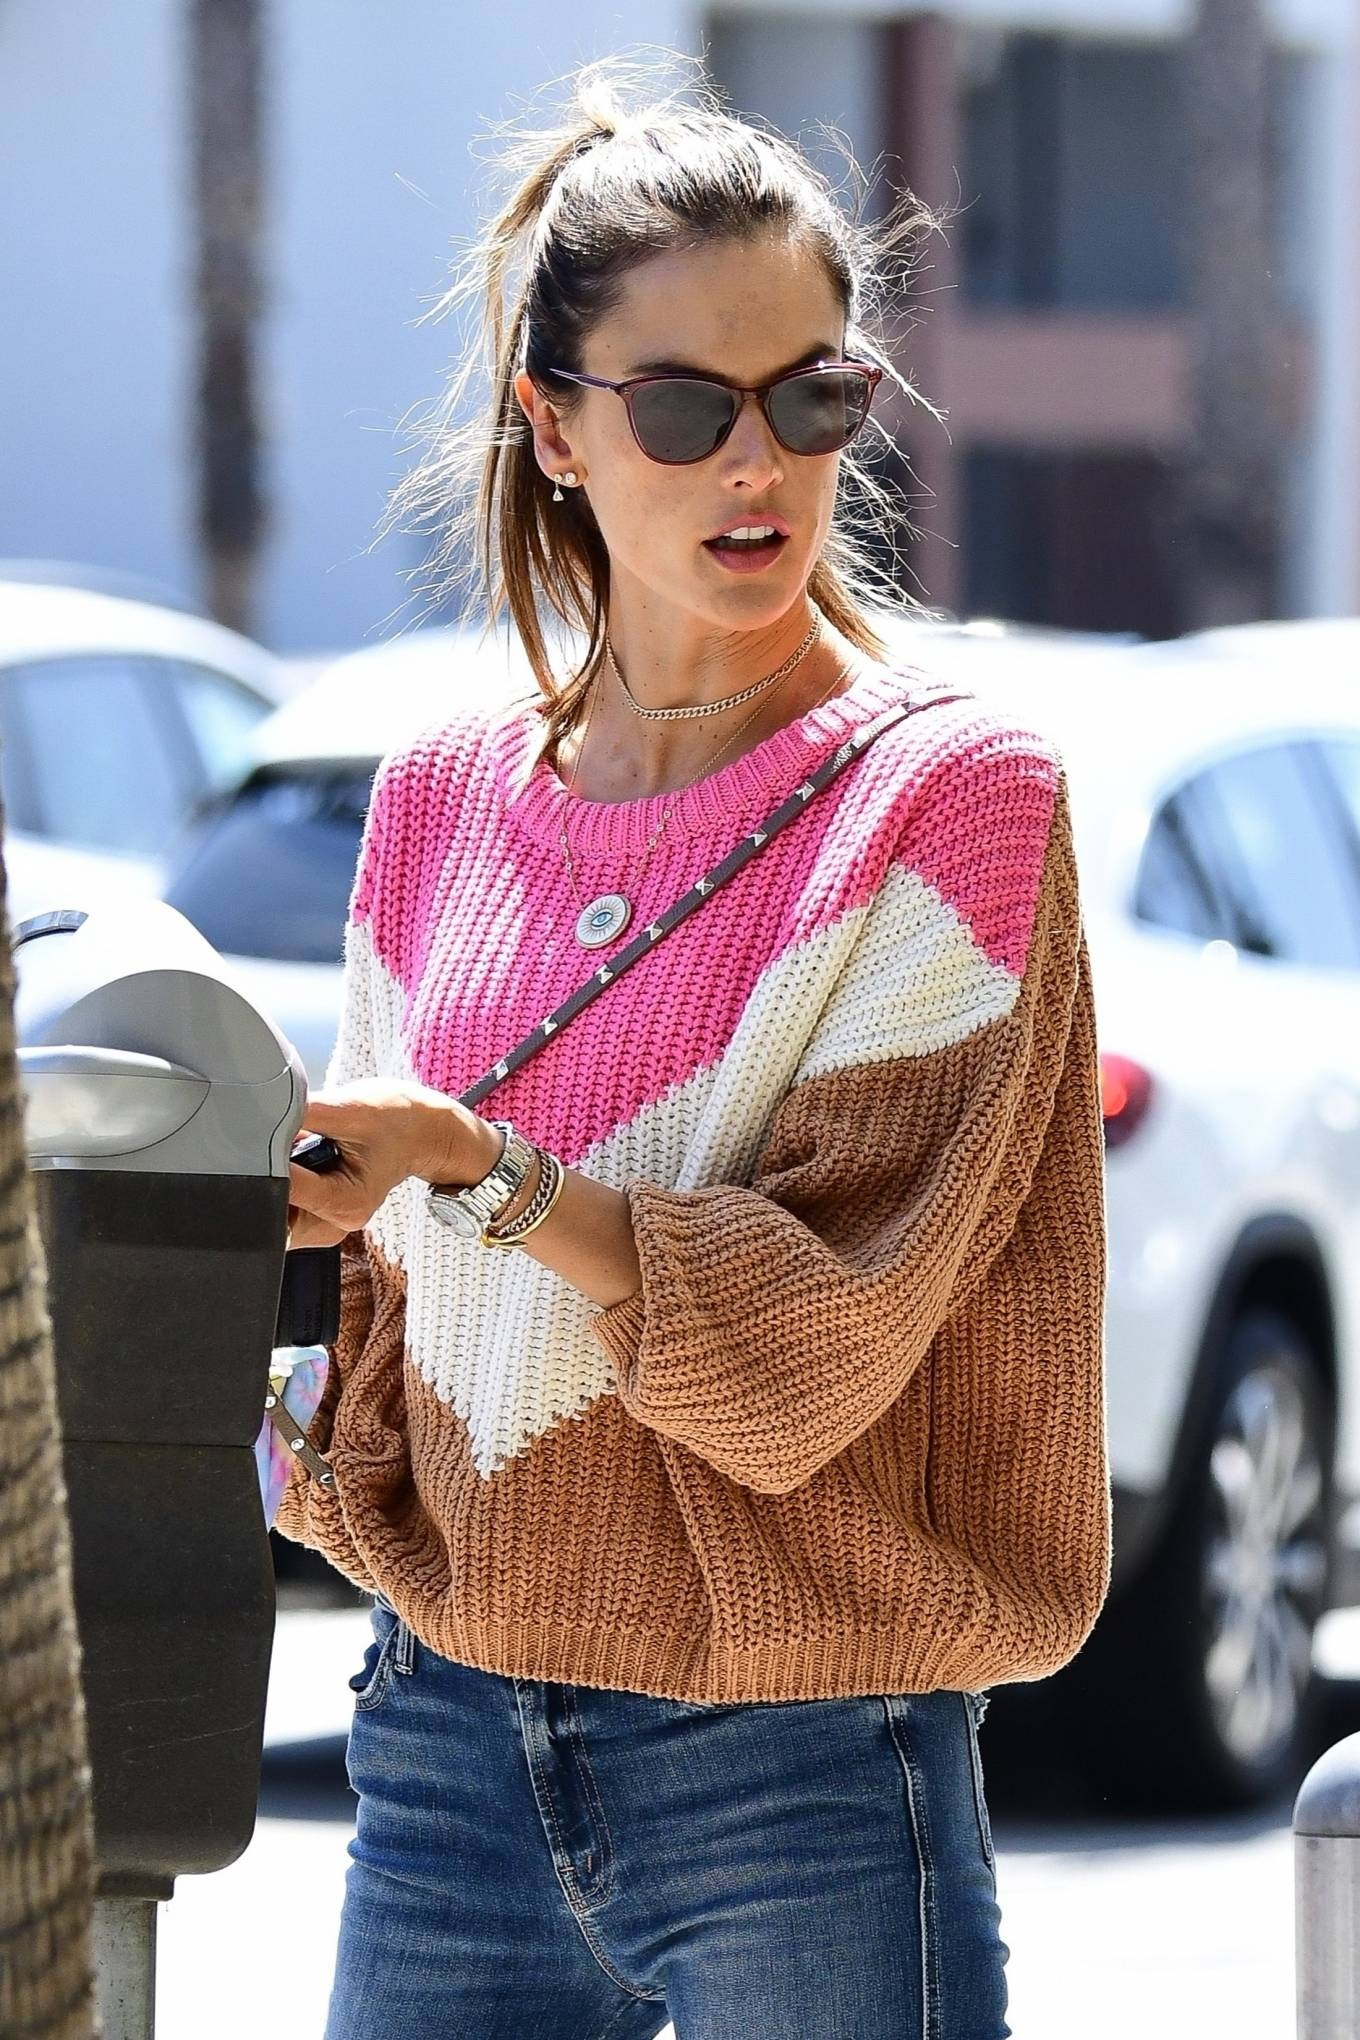 Alessandra Ambrosio, tan sneakers, oversized sweater, black sunglasses, round, lace-up, flat heel, brown sneakers, distressed blue jeans. Alessandra Ambrosio rocking round tan brown lace-up sneakers with flat heel